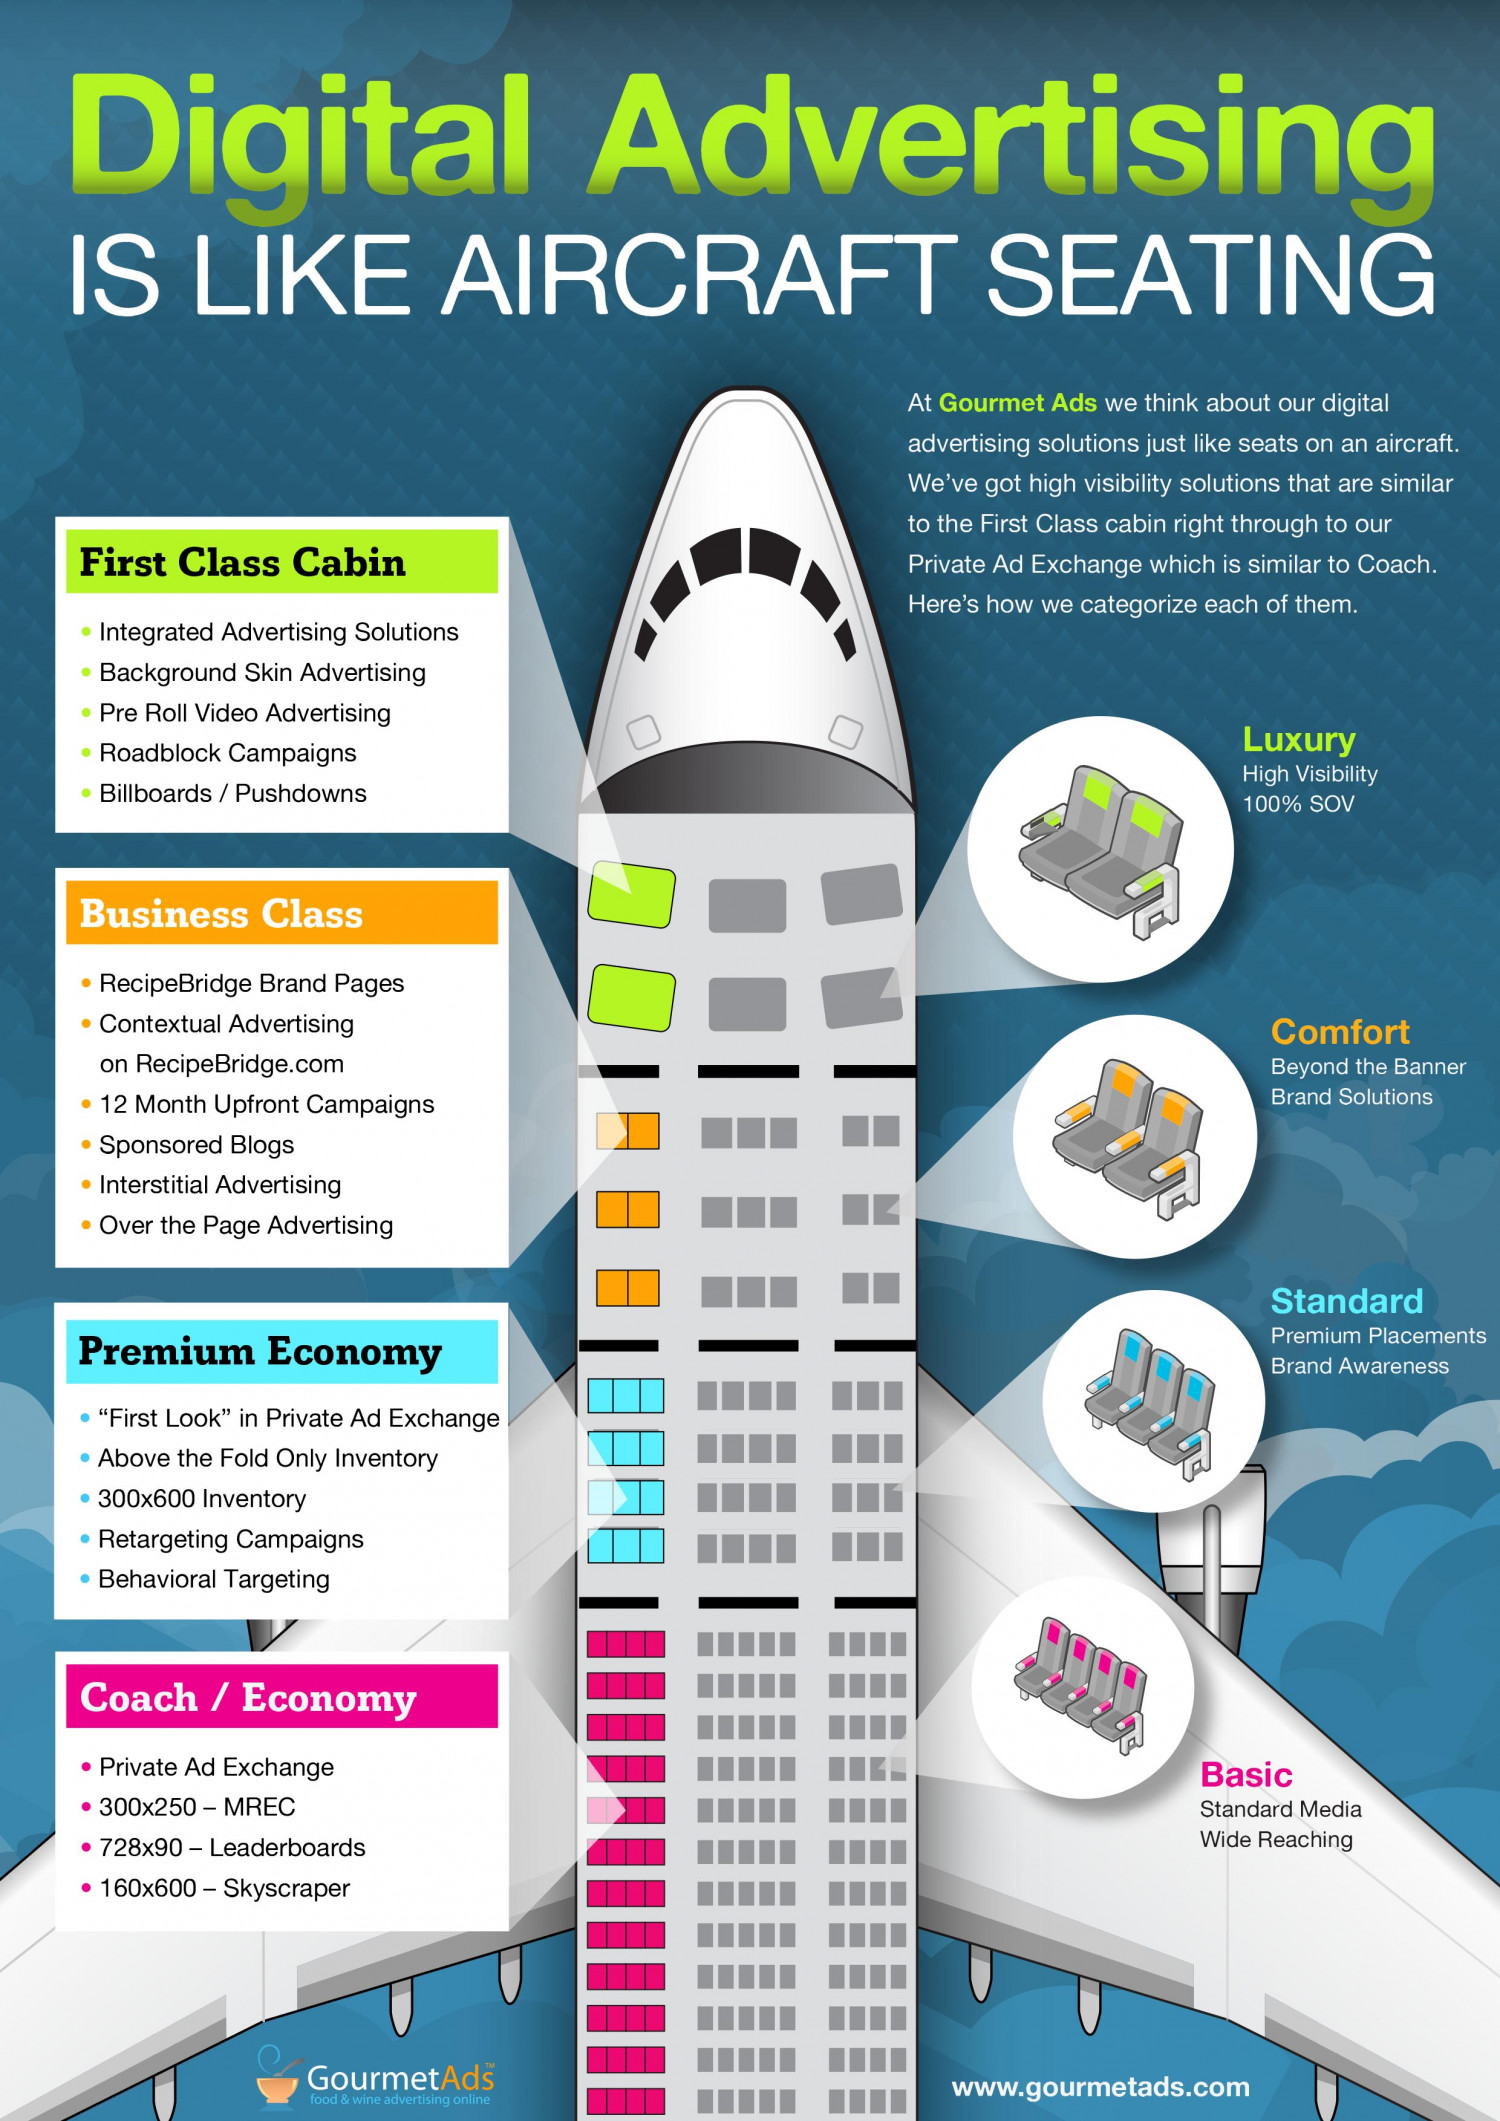 Digital Advertising And Airplane Seating Visual Ly